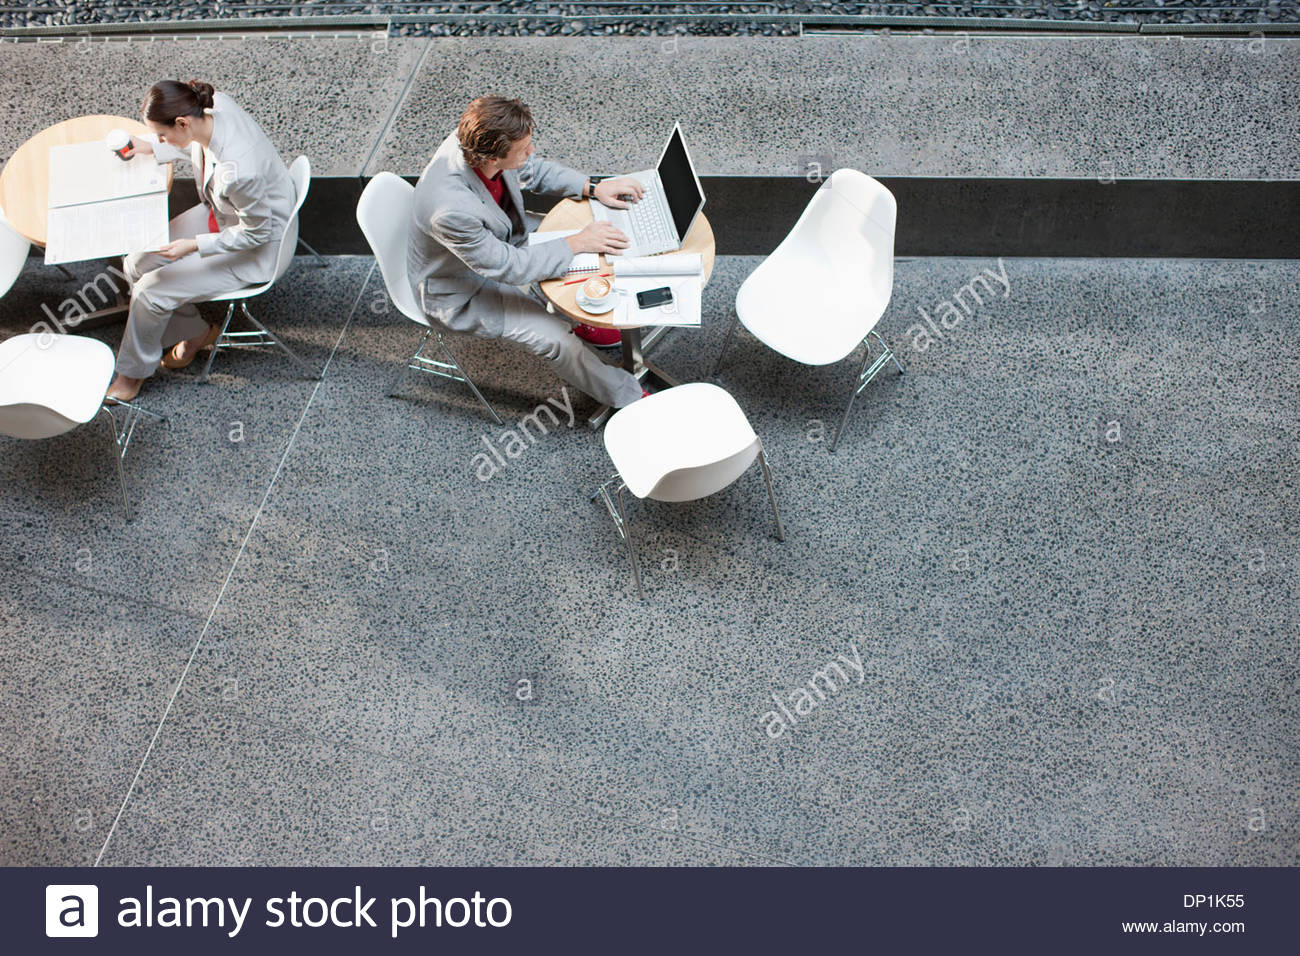 Businessman using laptop at table - Stock Image